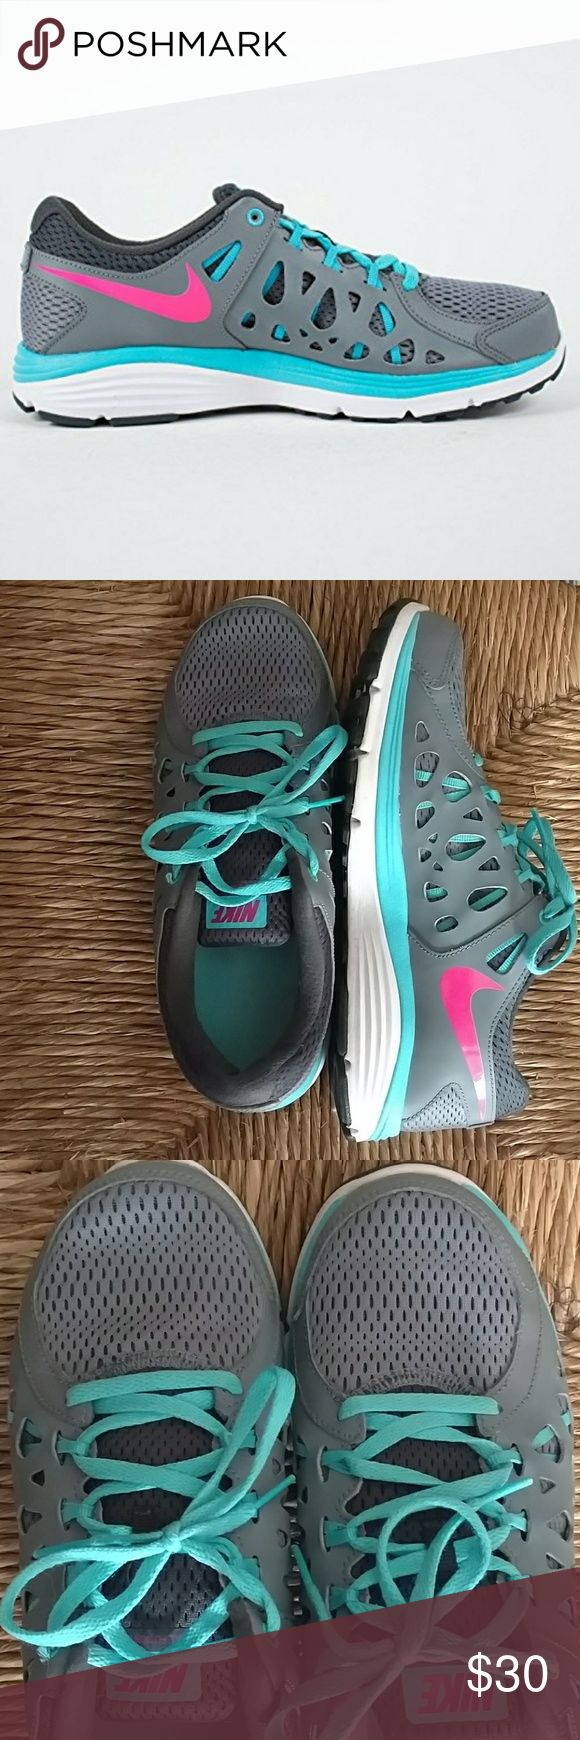 NIKE DUAL FUSION TENNIS SHOES Design as Shown Gently used Condition Clean Offers welcome as Always Nike Shoes Athletic Shoes